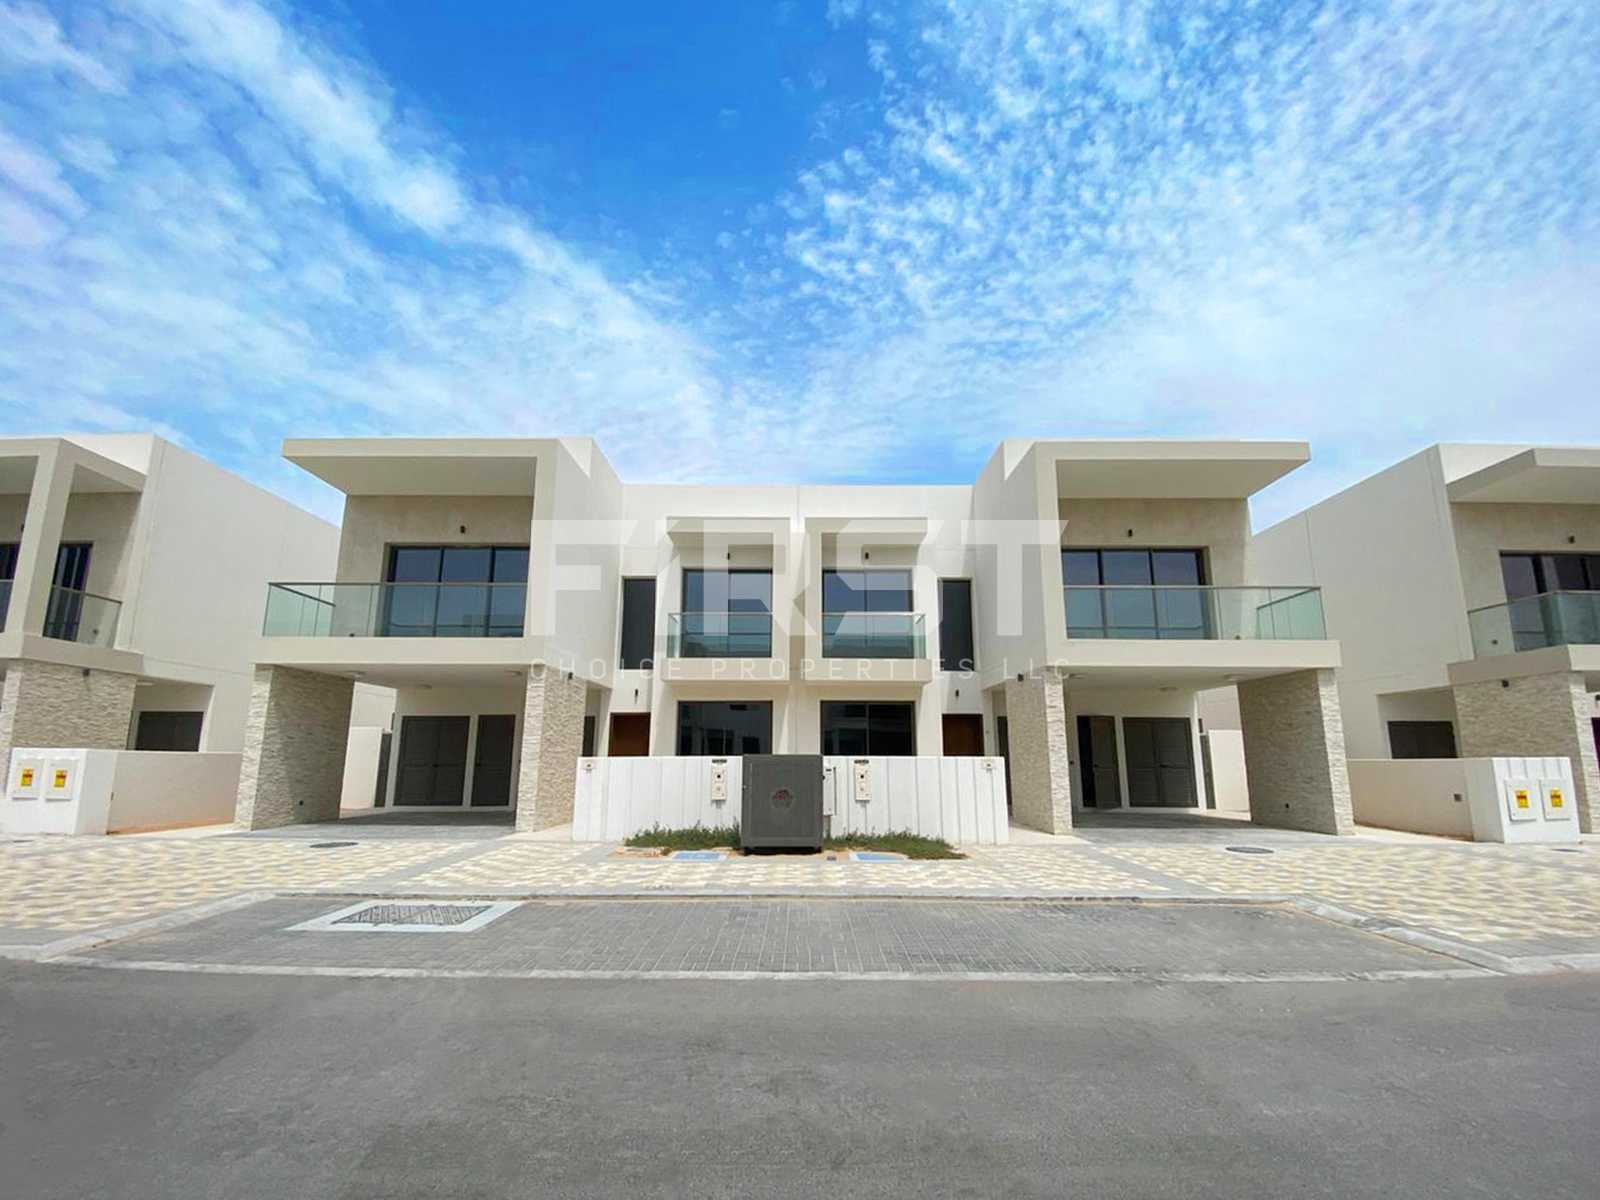 Internal Photo of 3 Bedroom Duplex Type Y in Yas Acres Yas Island Abu Dhabi UAE (8).jpg